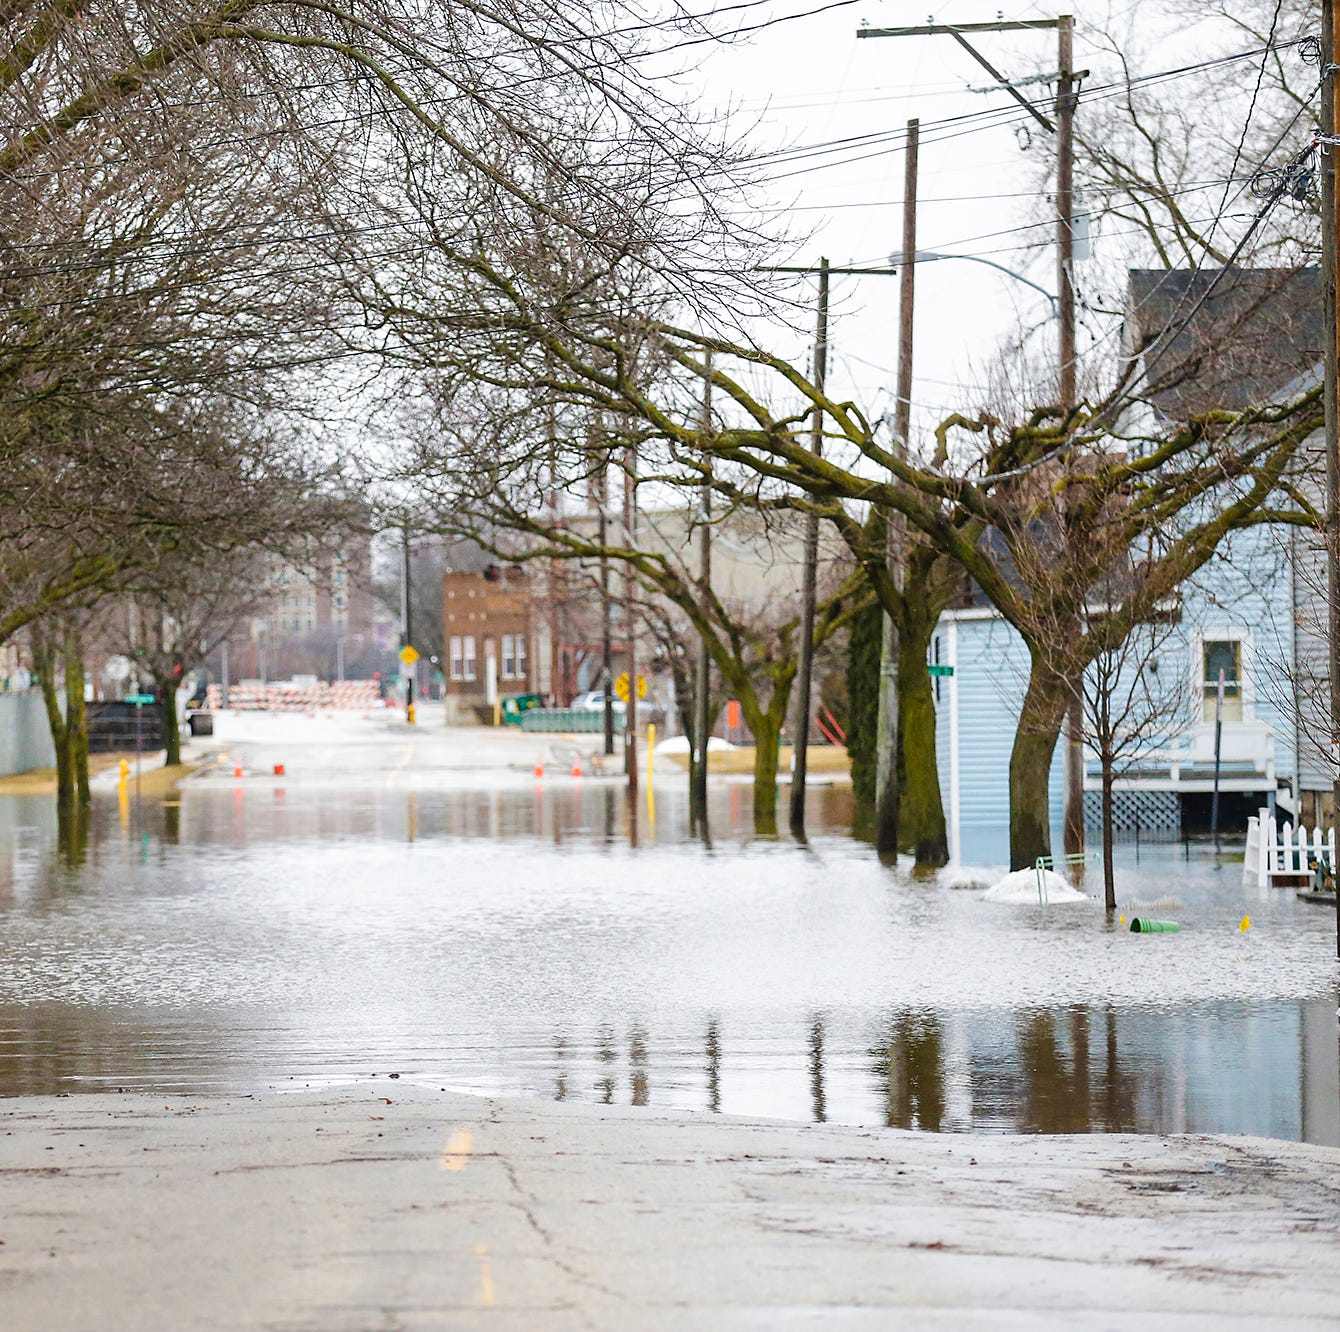 As floodwaters subside in Fond du Lac, efforts shift from response to recovery